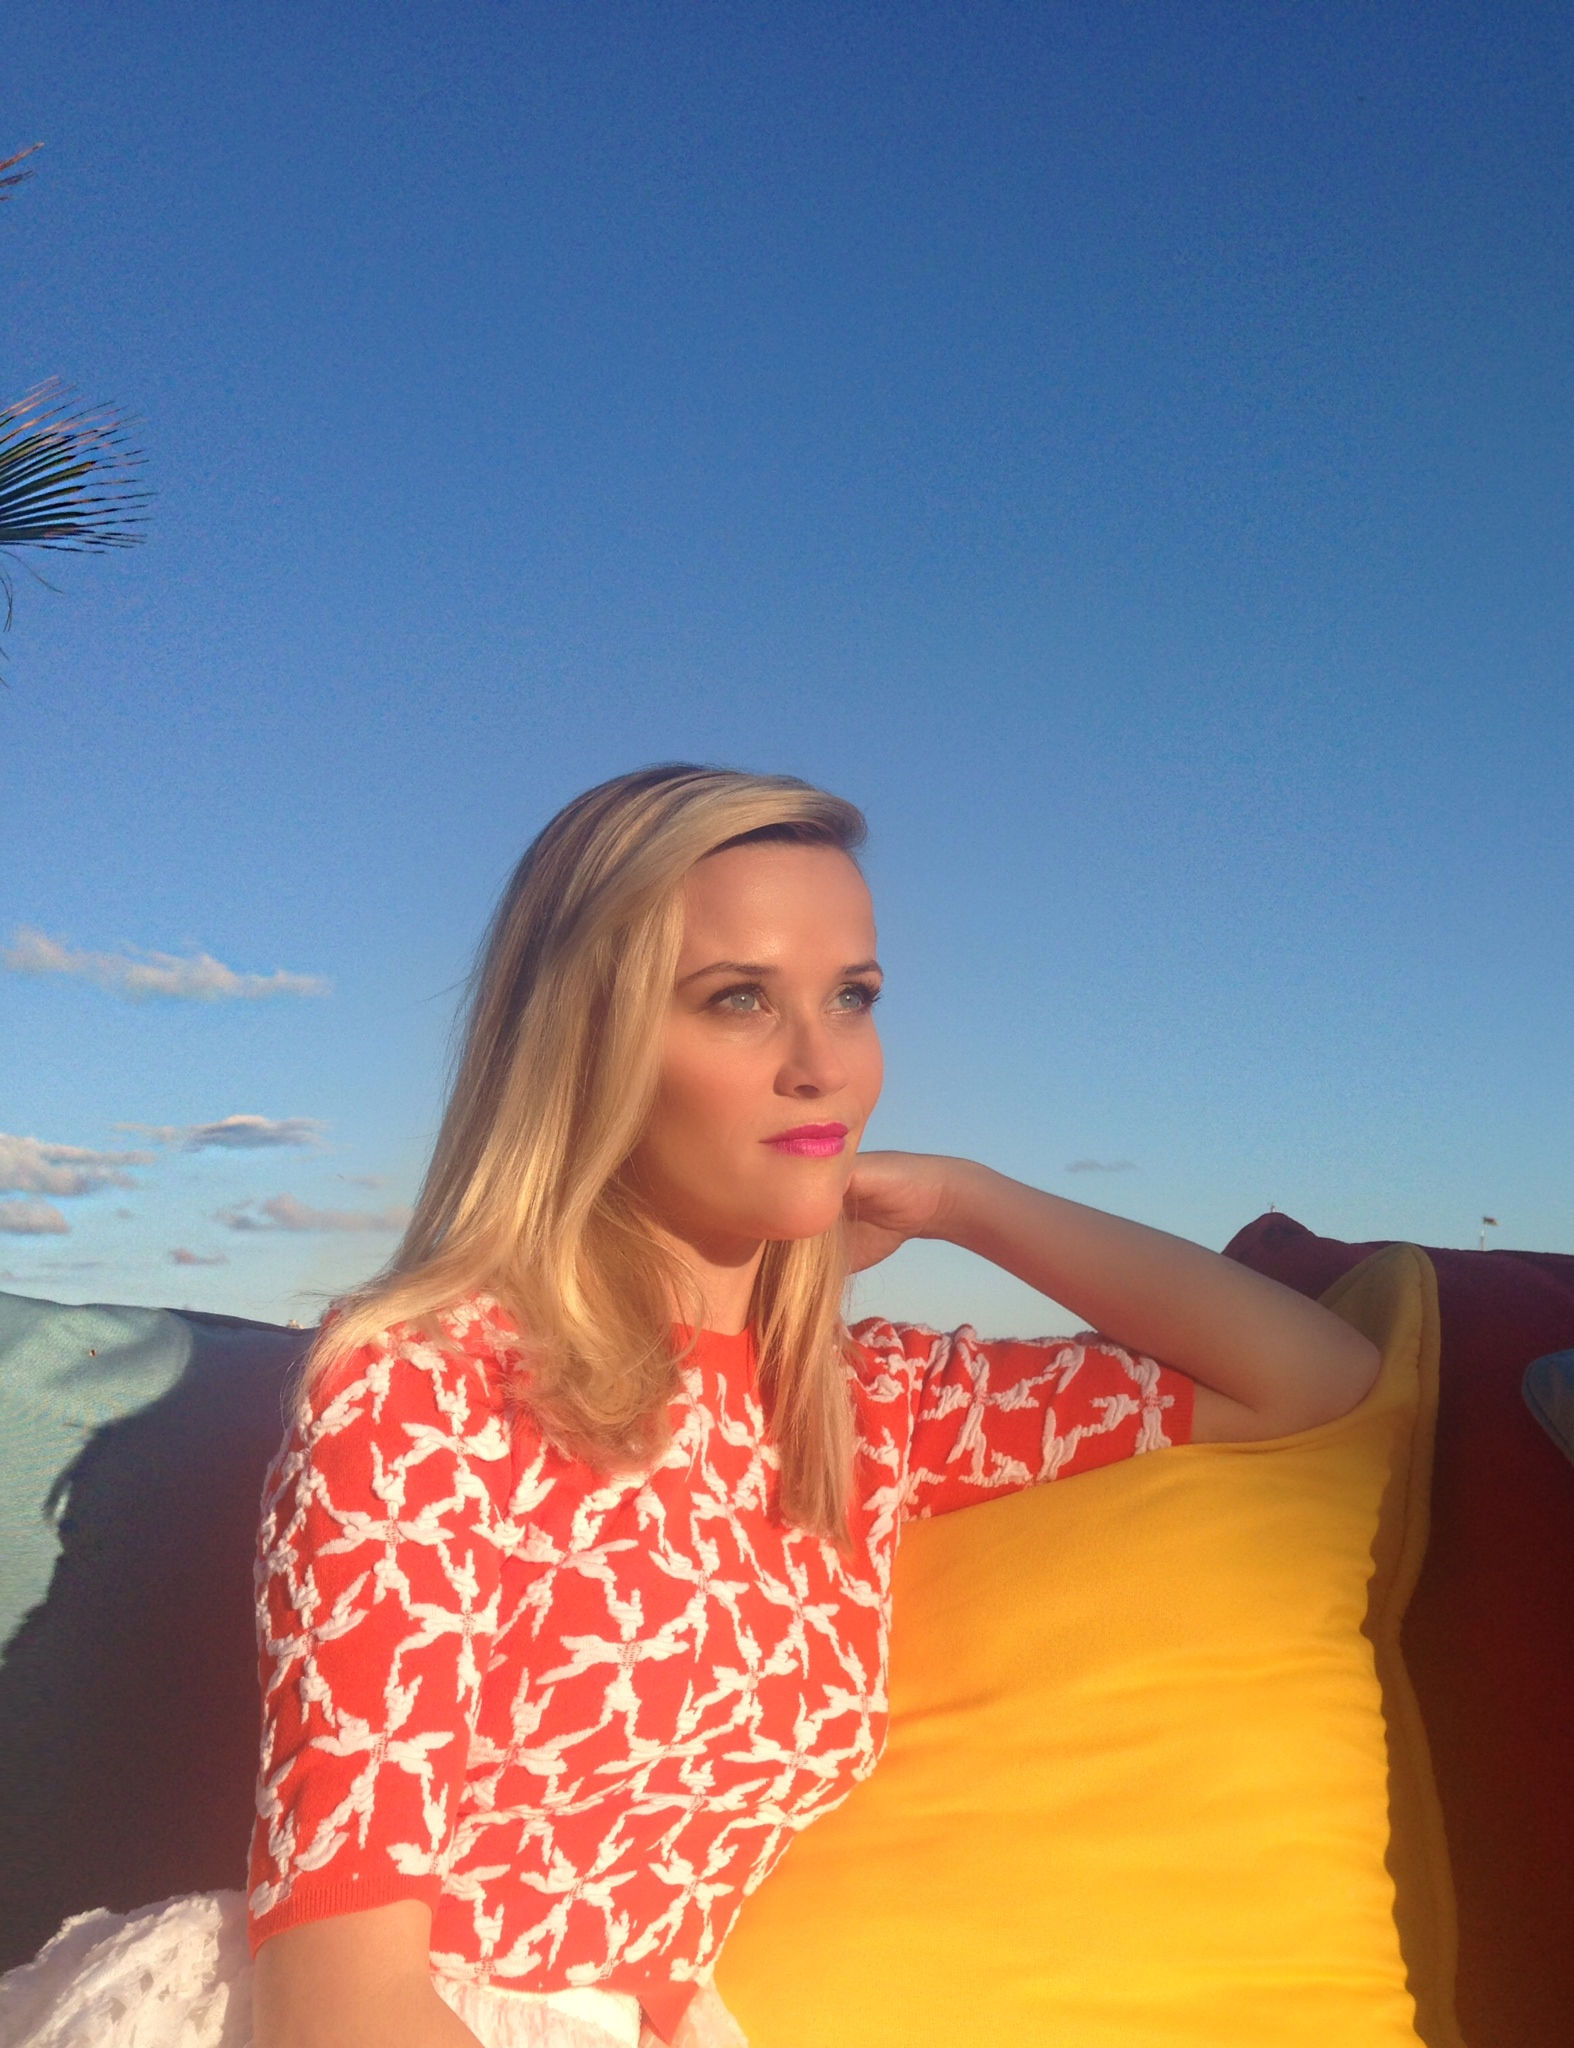 Reese Witherspoon Fappening photo 17